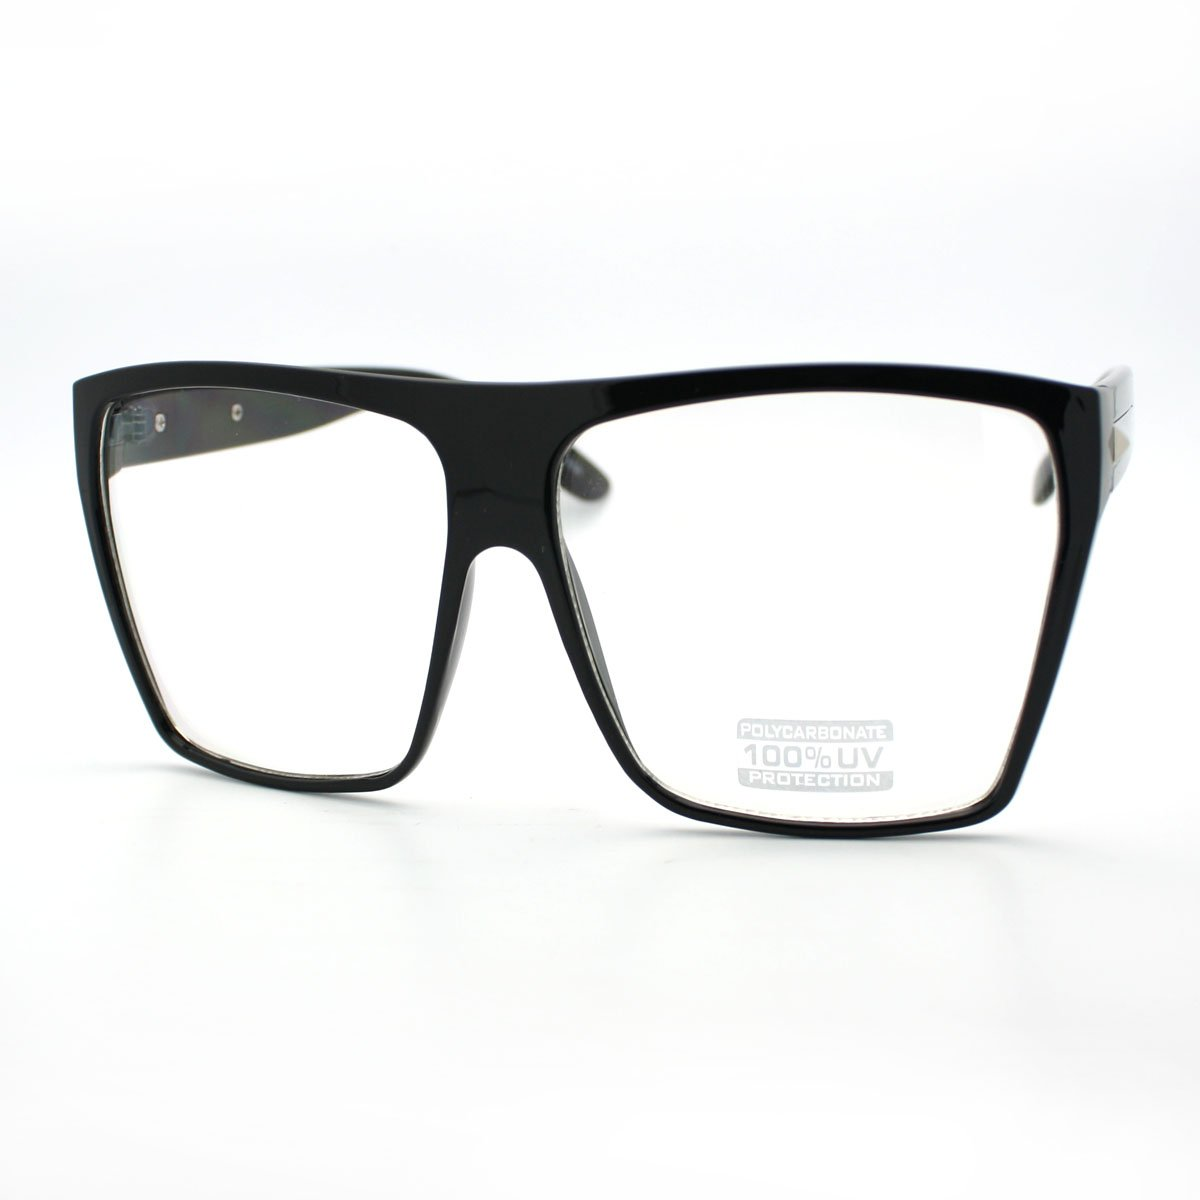 Super Oversized Eyeglasses Flat Top Square Clear Lens Glasses Frames ZV-8830d